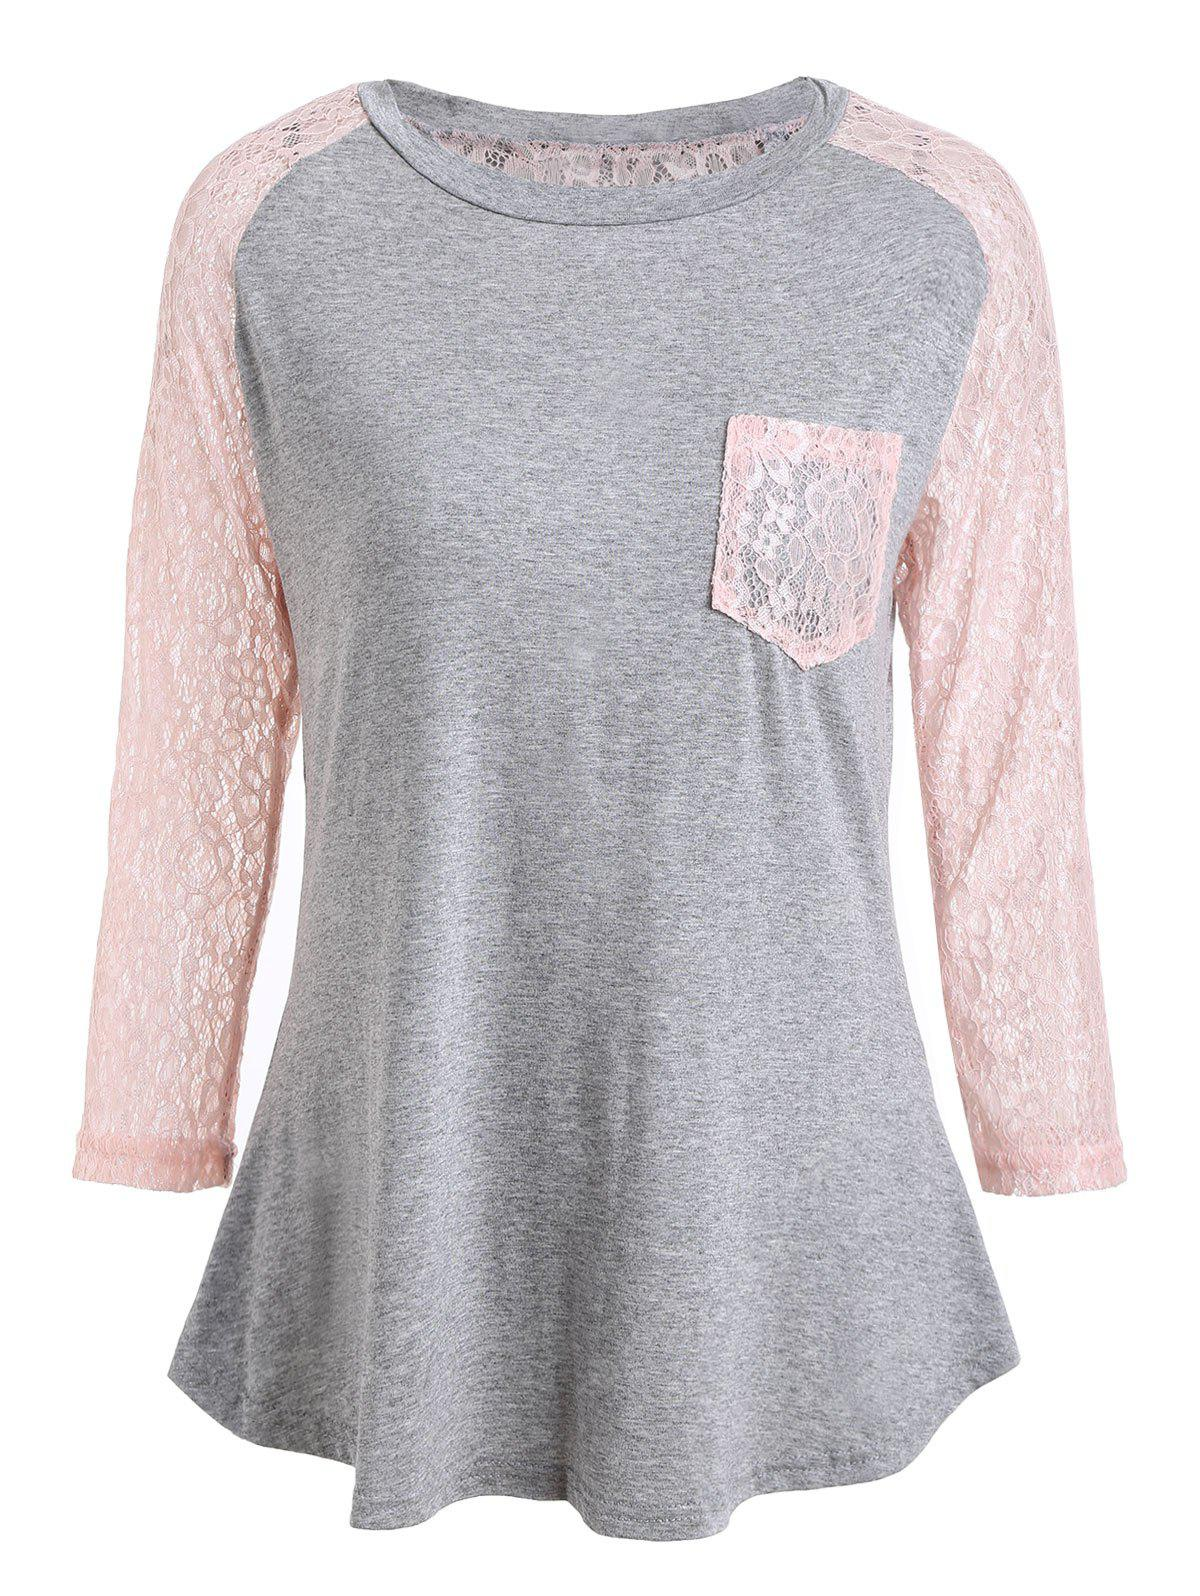 Lace Insert Raglan Sleeve T-shirt with Pocket